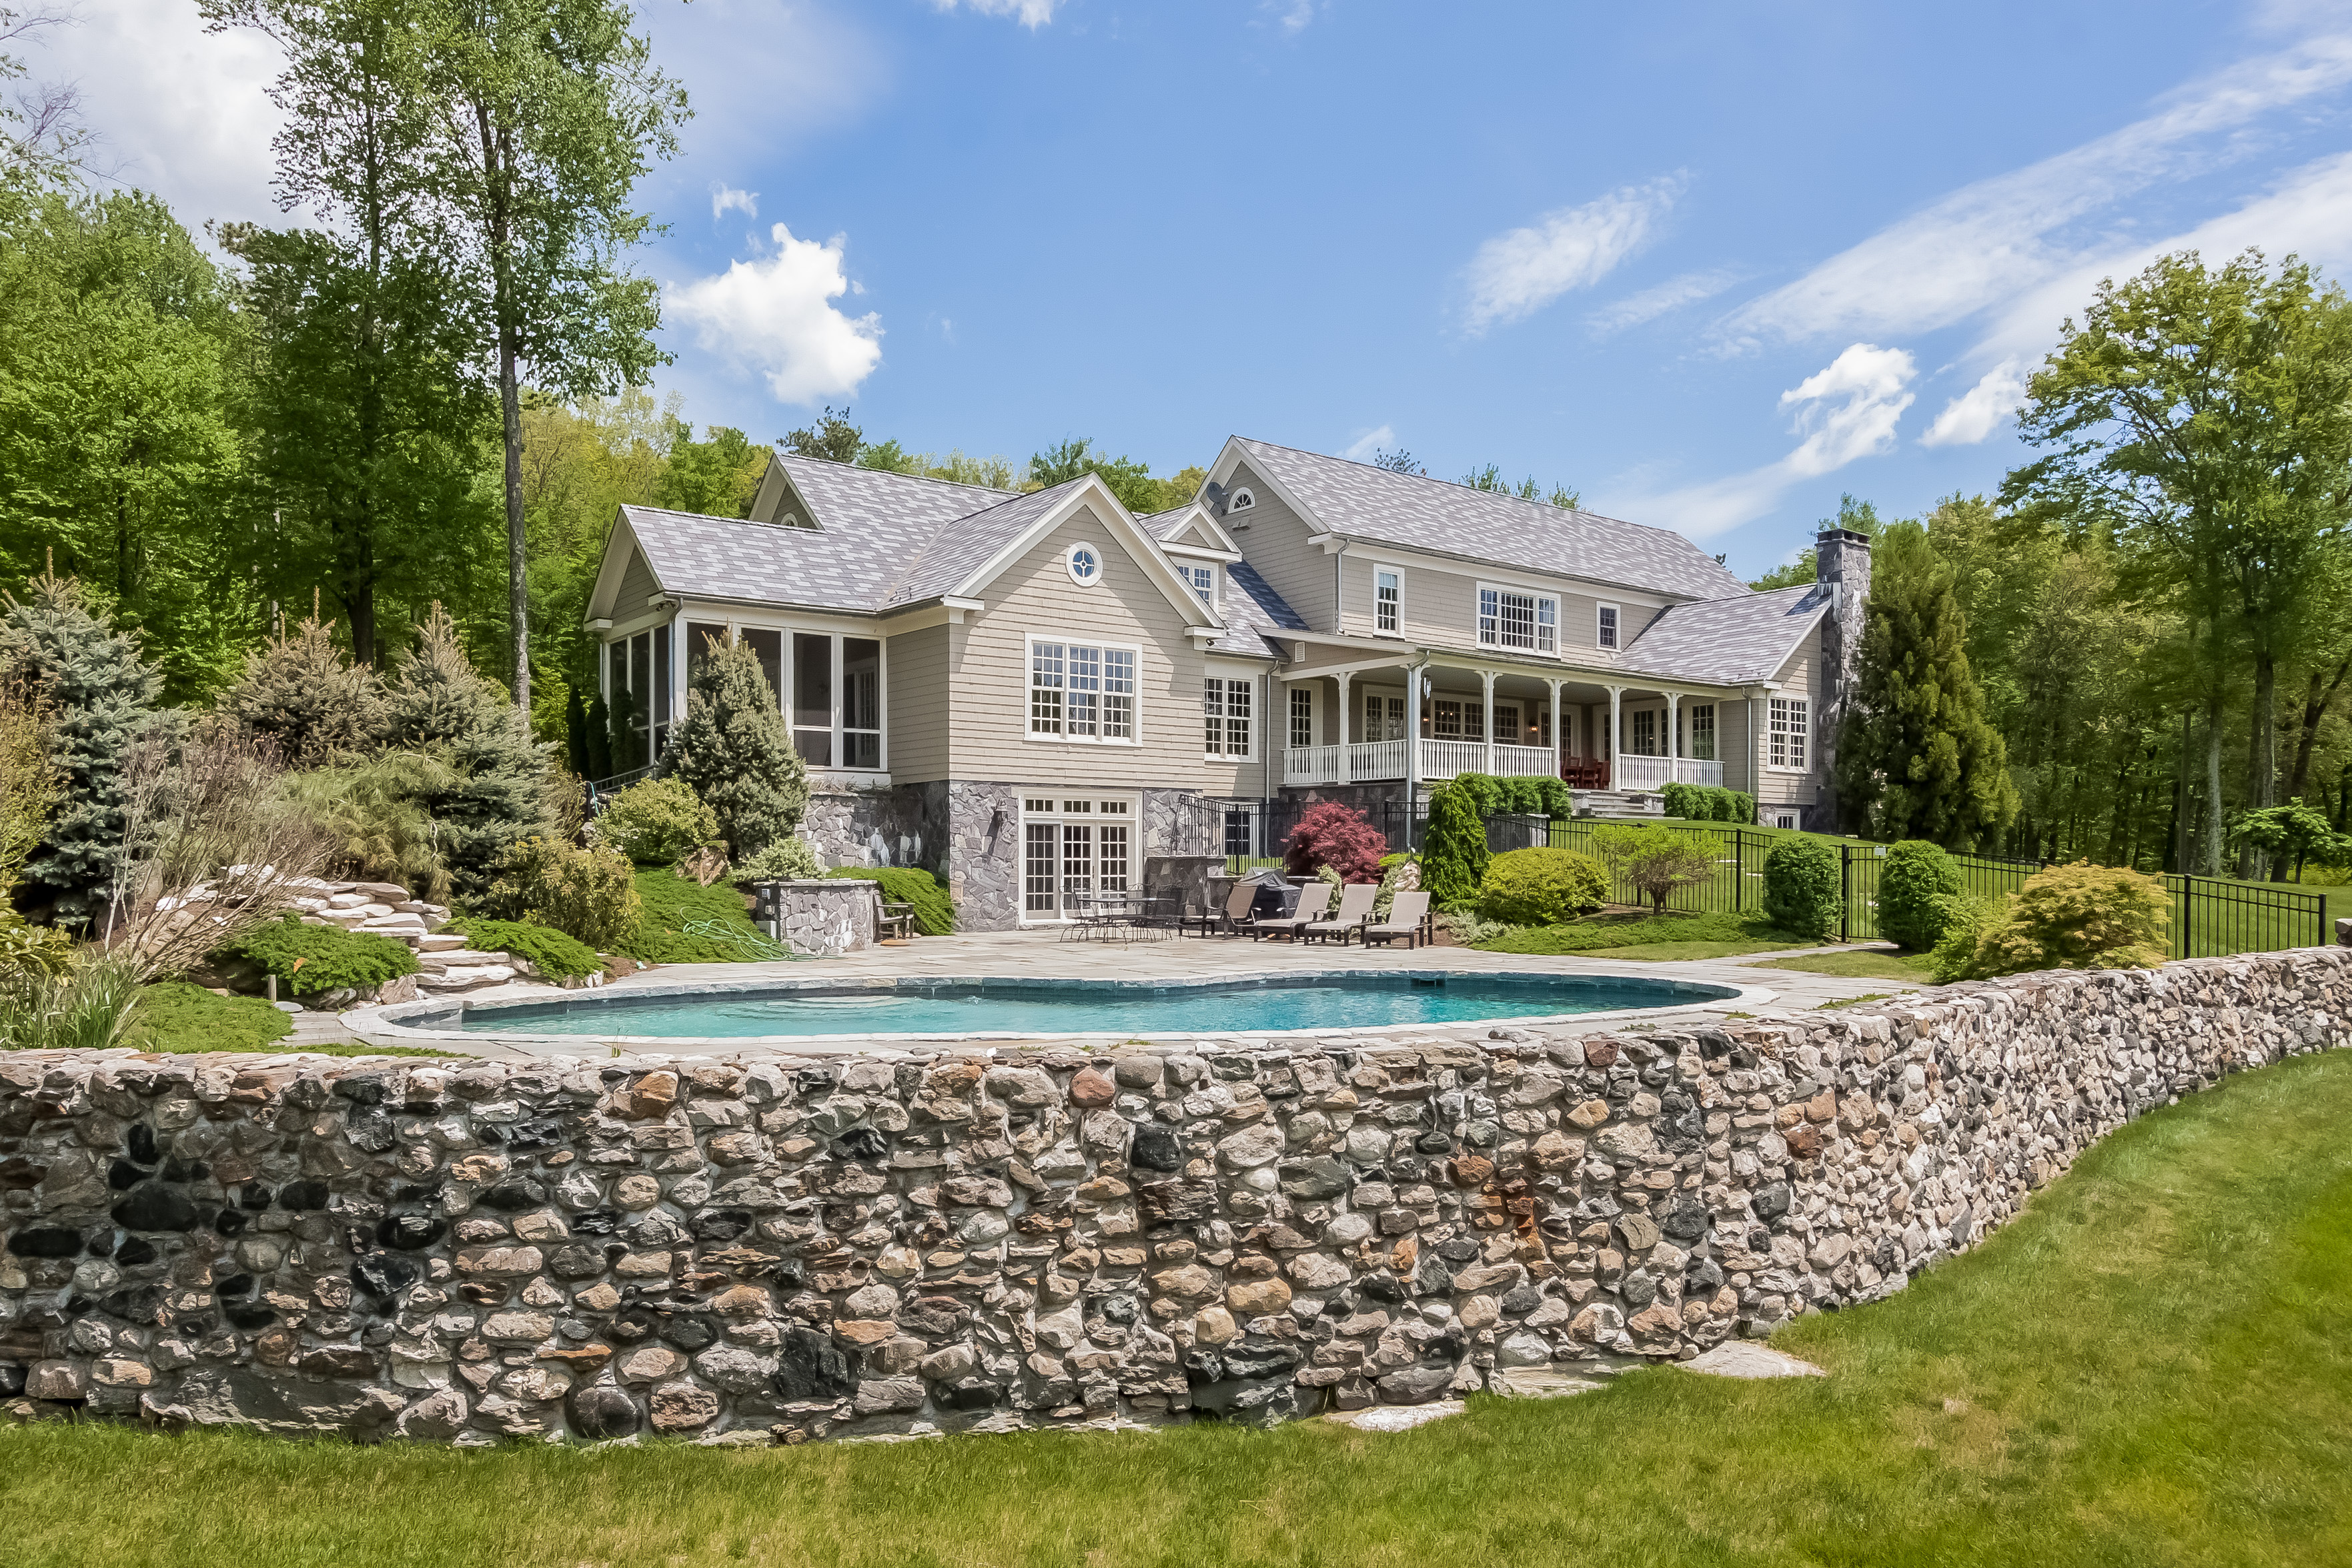 Single Family Home for Sale at Bella Vista 24 Ranney Hill Rd Roxbury, Connecticut, 06783 United States